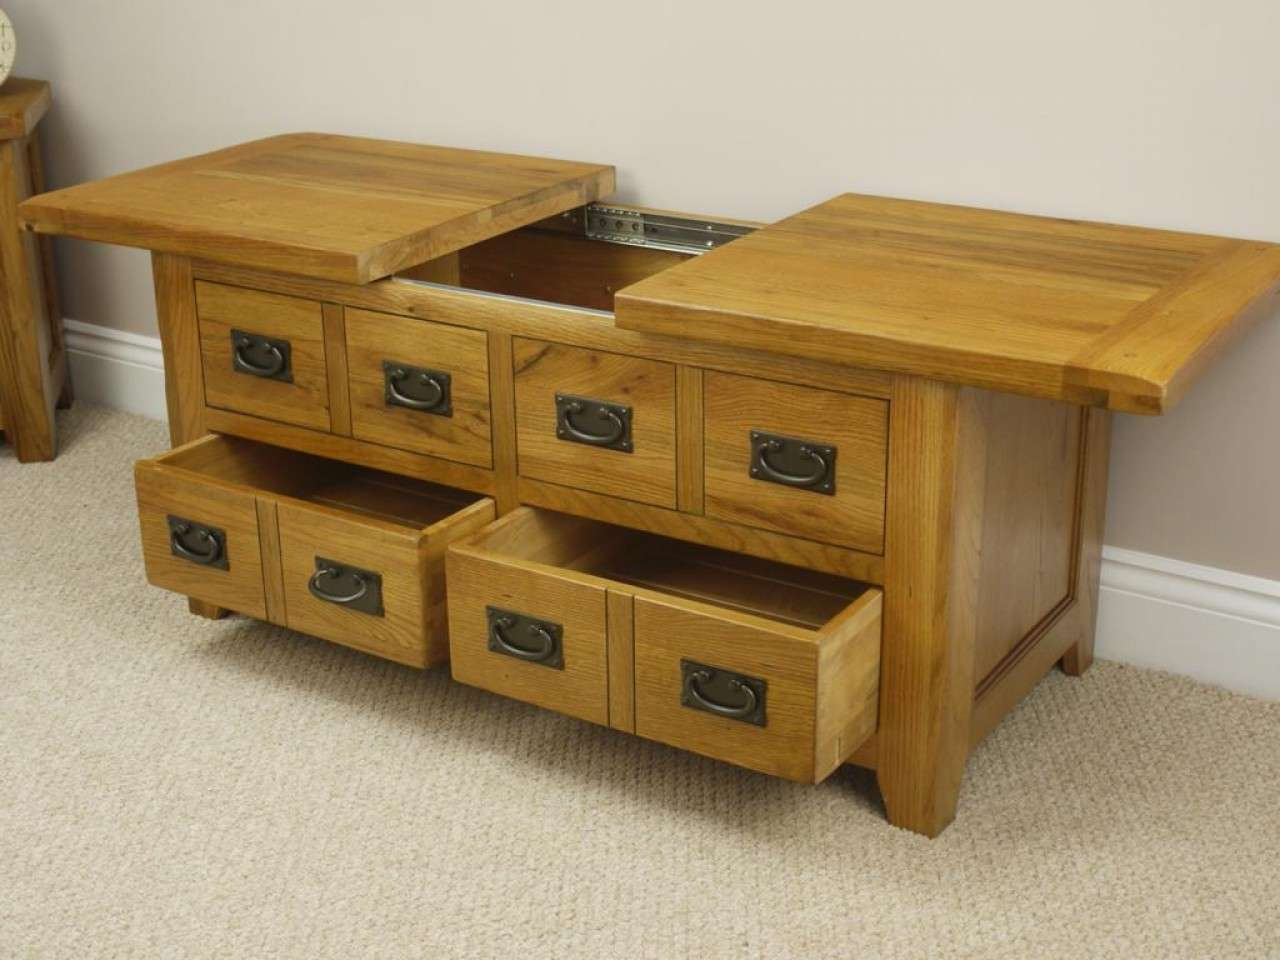 Newest Low Coffee Table With Storage Inside Coffee Tables : Simple Square Ottoman Coffee Table With Storage (View 9 of 20)